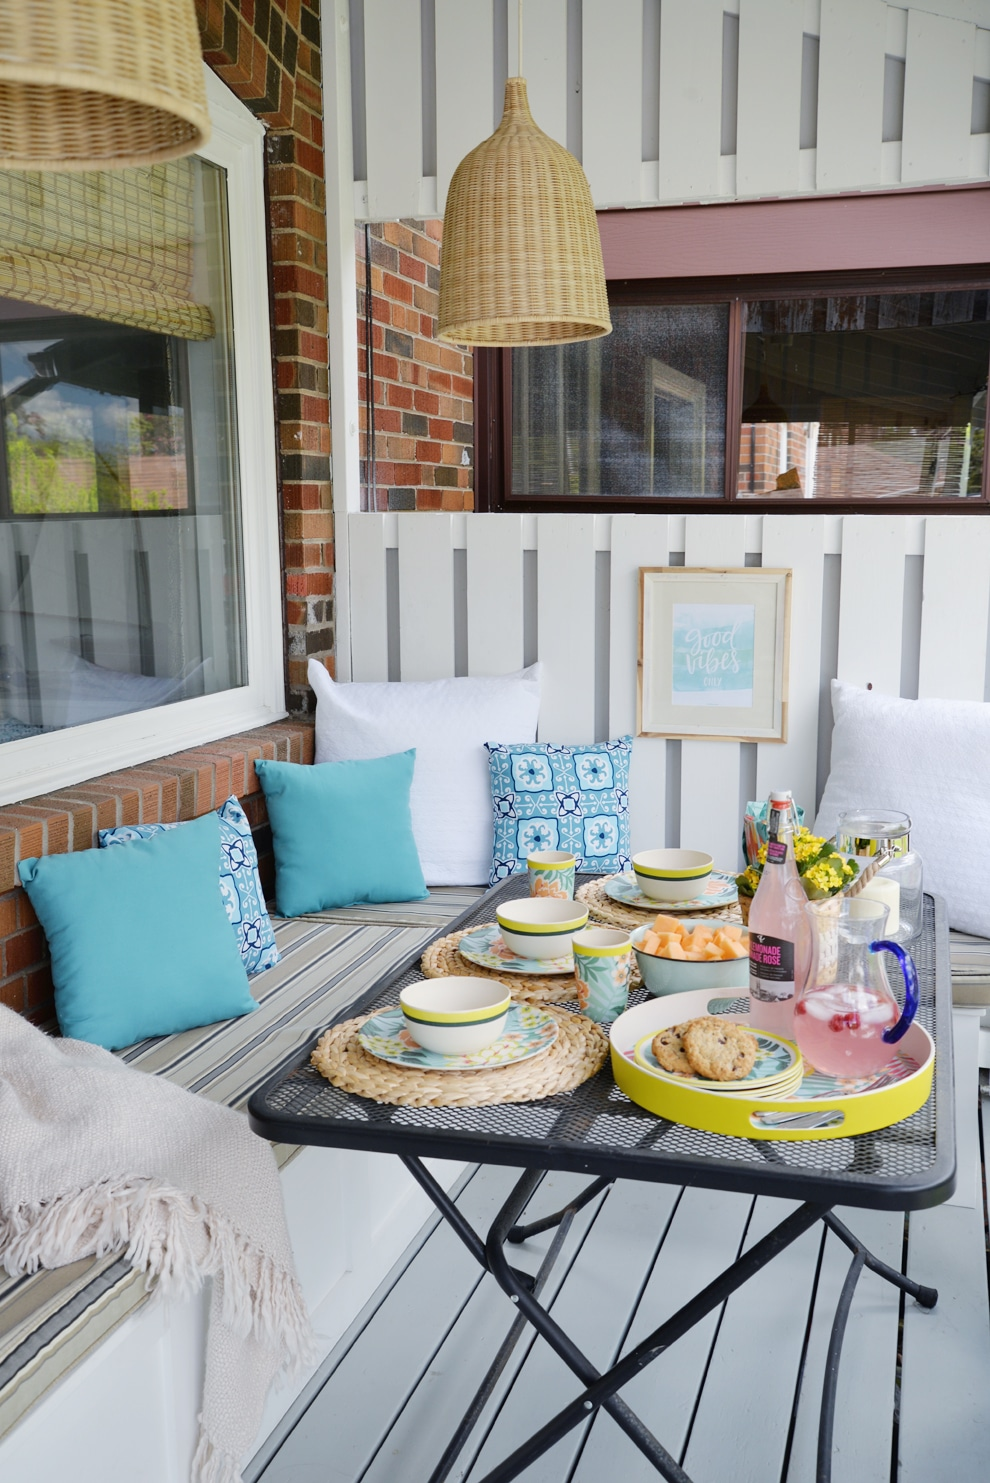 12 stylish porch deck and patio decor ideas setting for for Patio deck decorating ideas